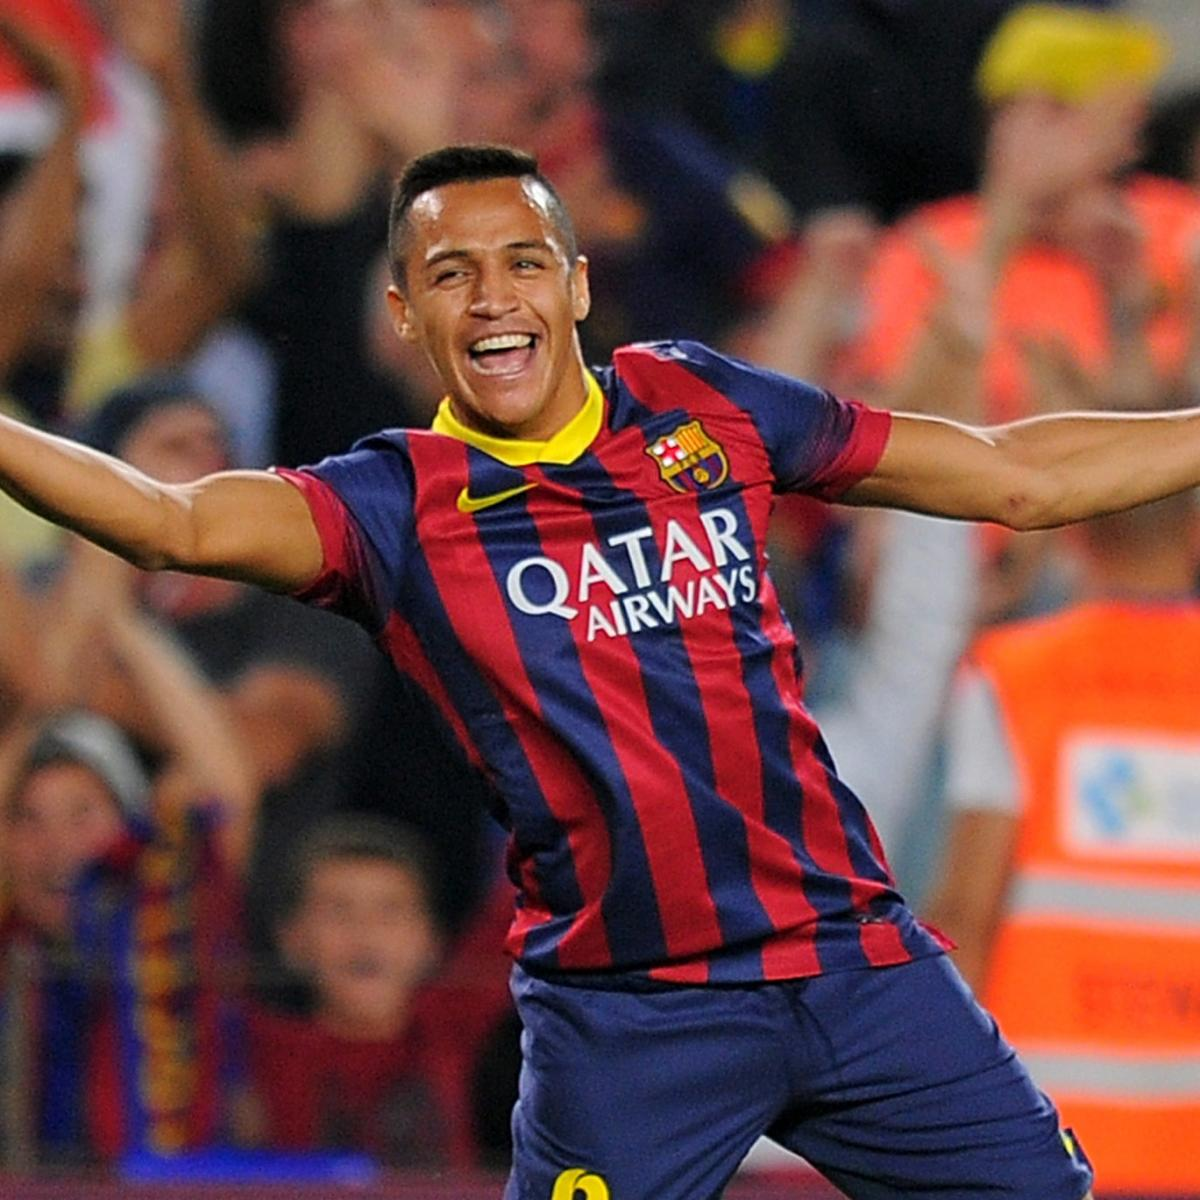 Barcelona Vs Celta Vigo Goals Today: GIF: Alexis Sanchez Opens Scoring For Barcelona Vs. Celta